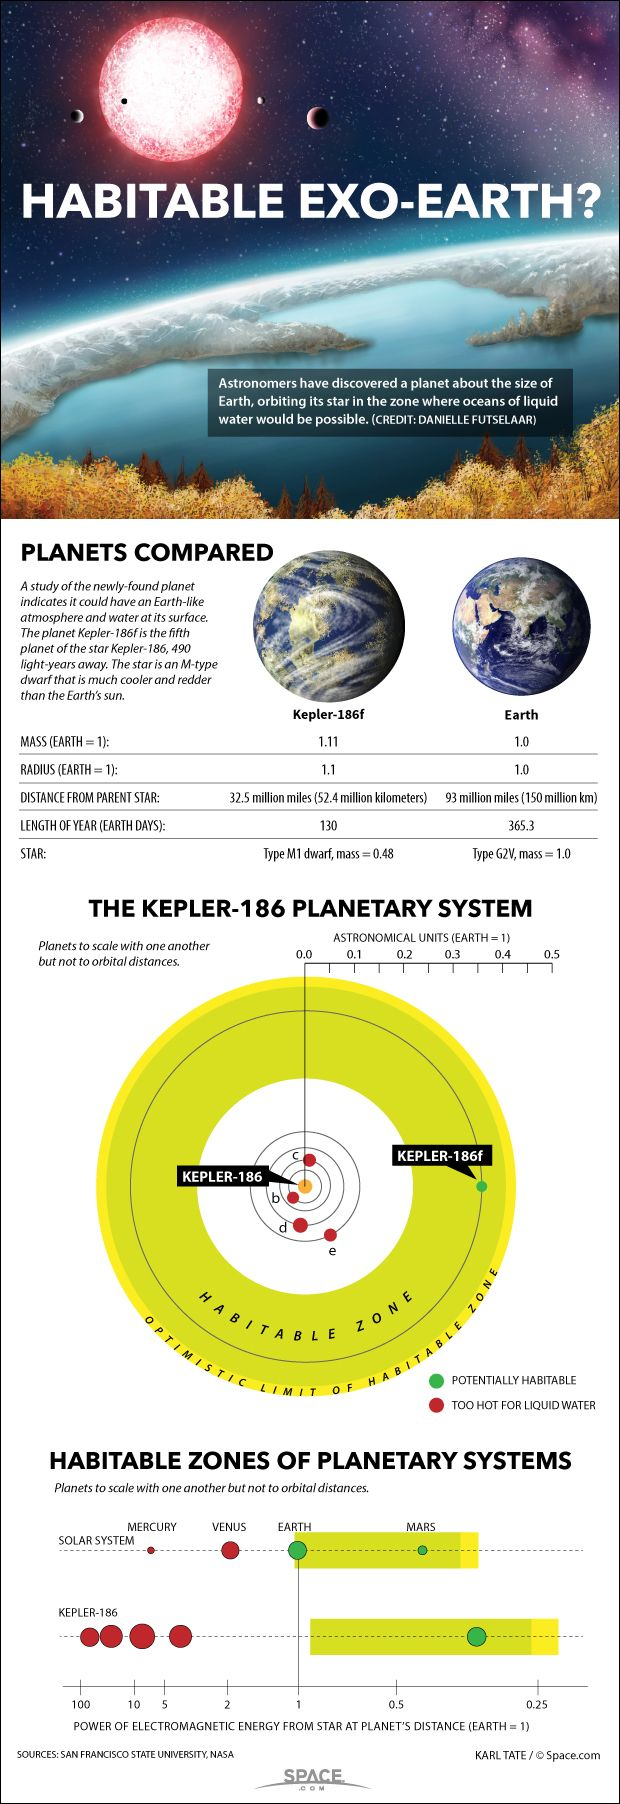 The rocky alien planet Kepler 186f is an Earth-size world that could have liquid water on its surface, and possibly even life. It orbits a star 490 light-years away. See the full details of alien planet Kepler-186f in this Space.com infographic. Credit: By Karl Tate, Infographics Artist via @robbinjimmerson